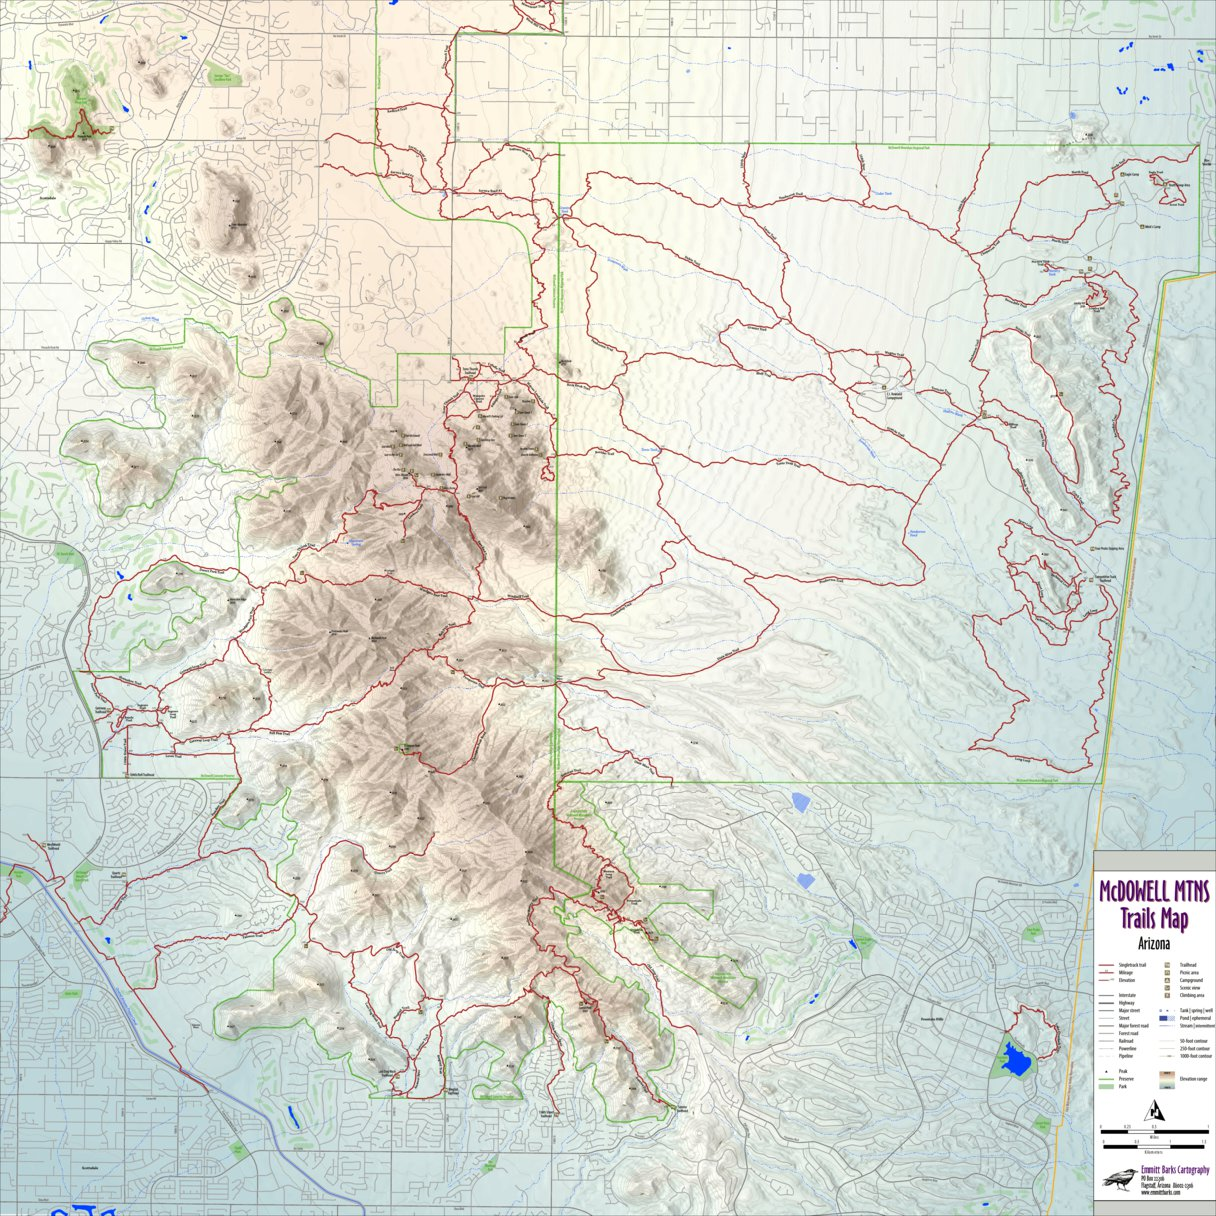 McDowell Mountains Trails Map - Emmitt Barks Cartography - Avenza Maps